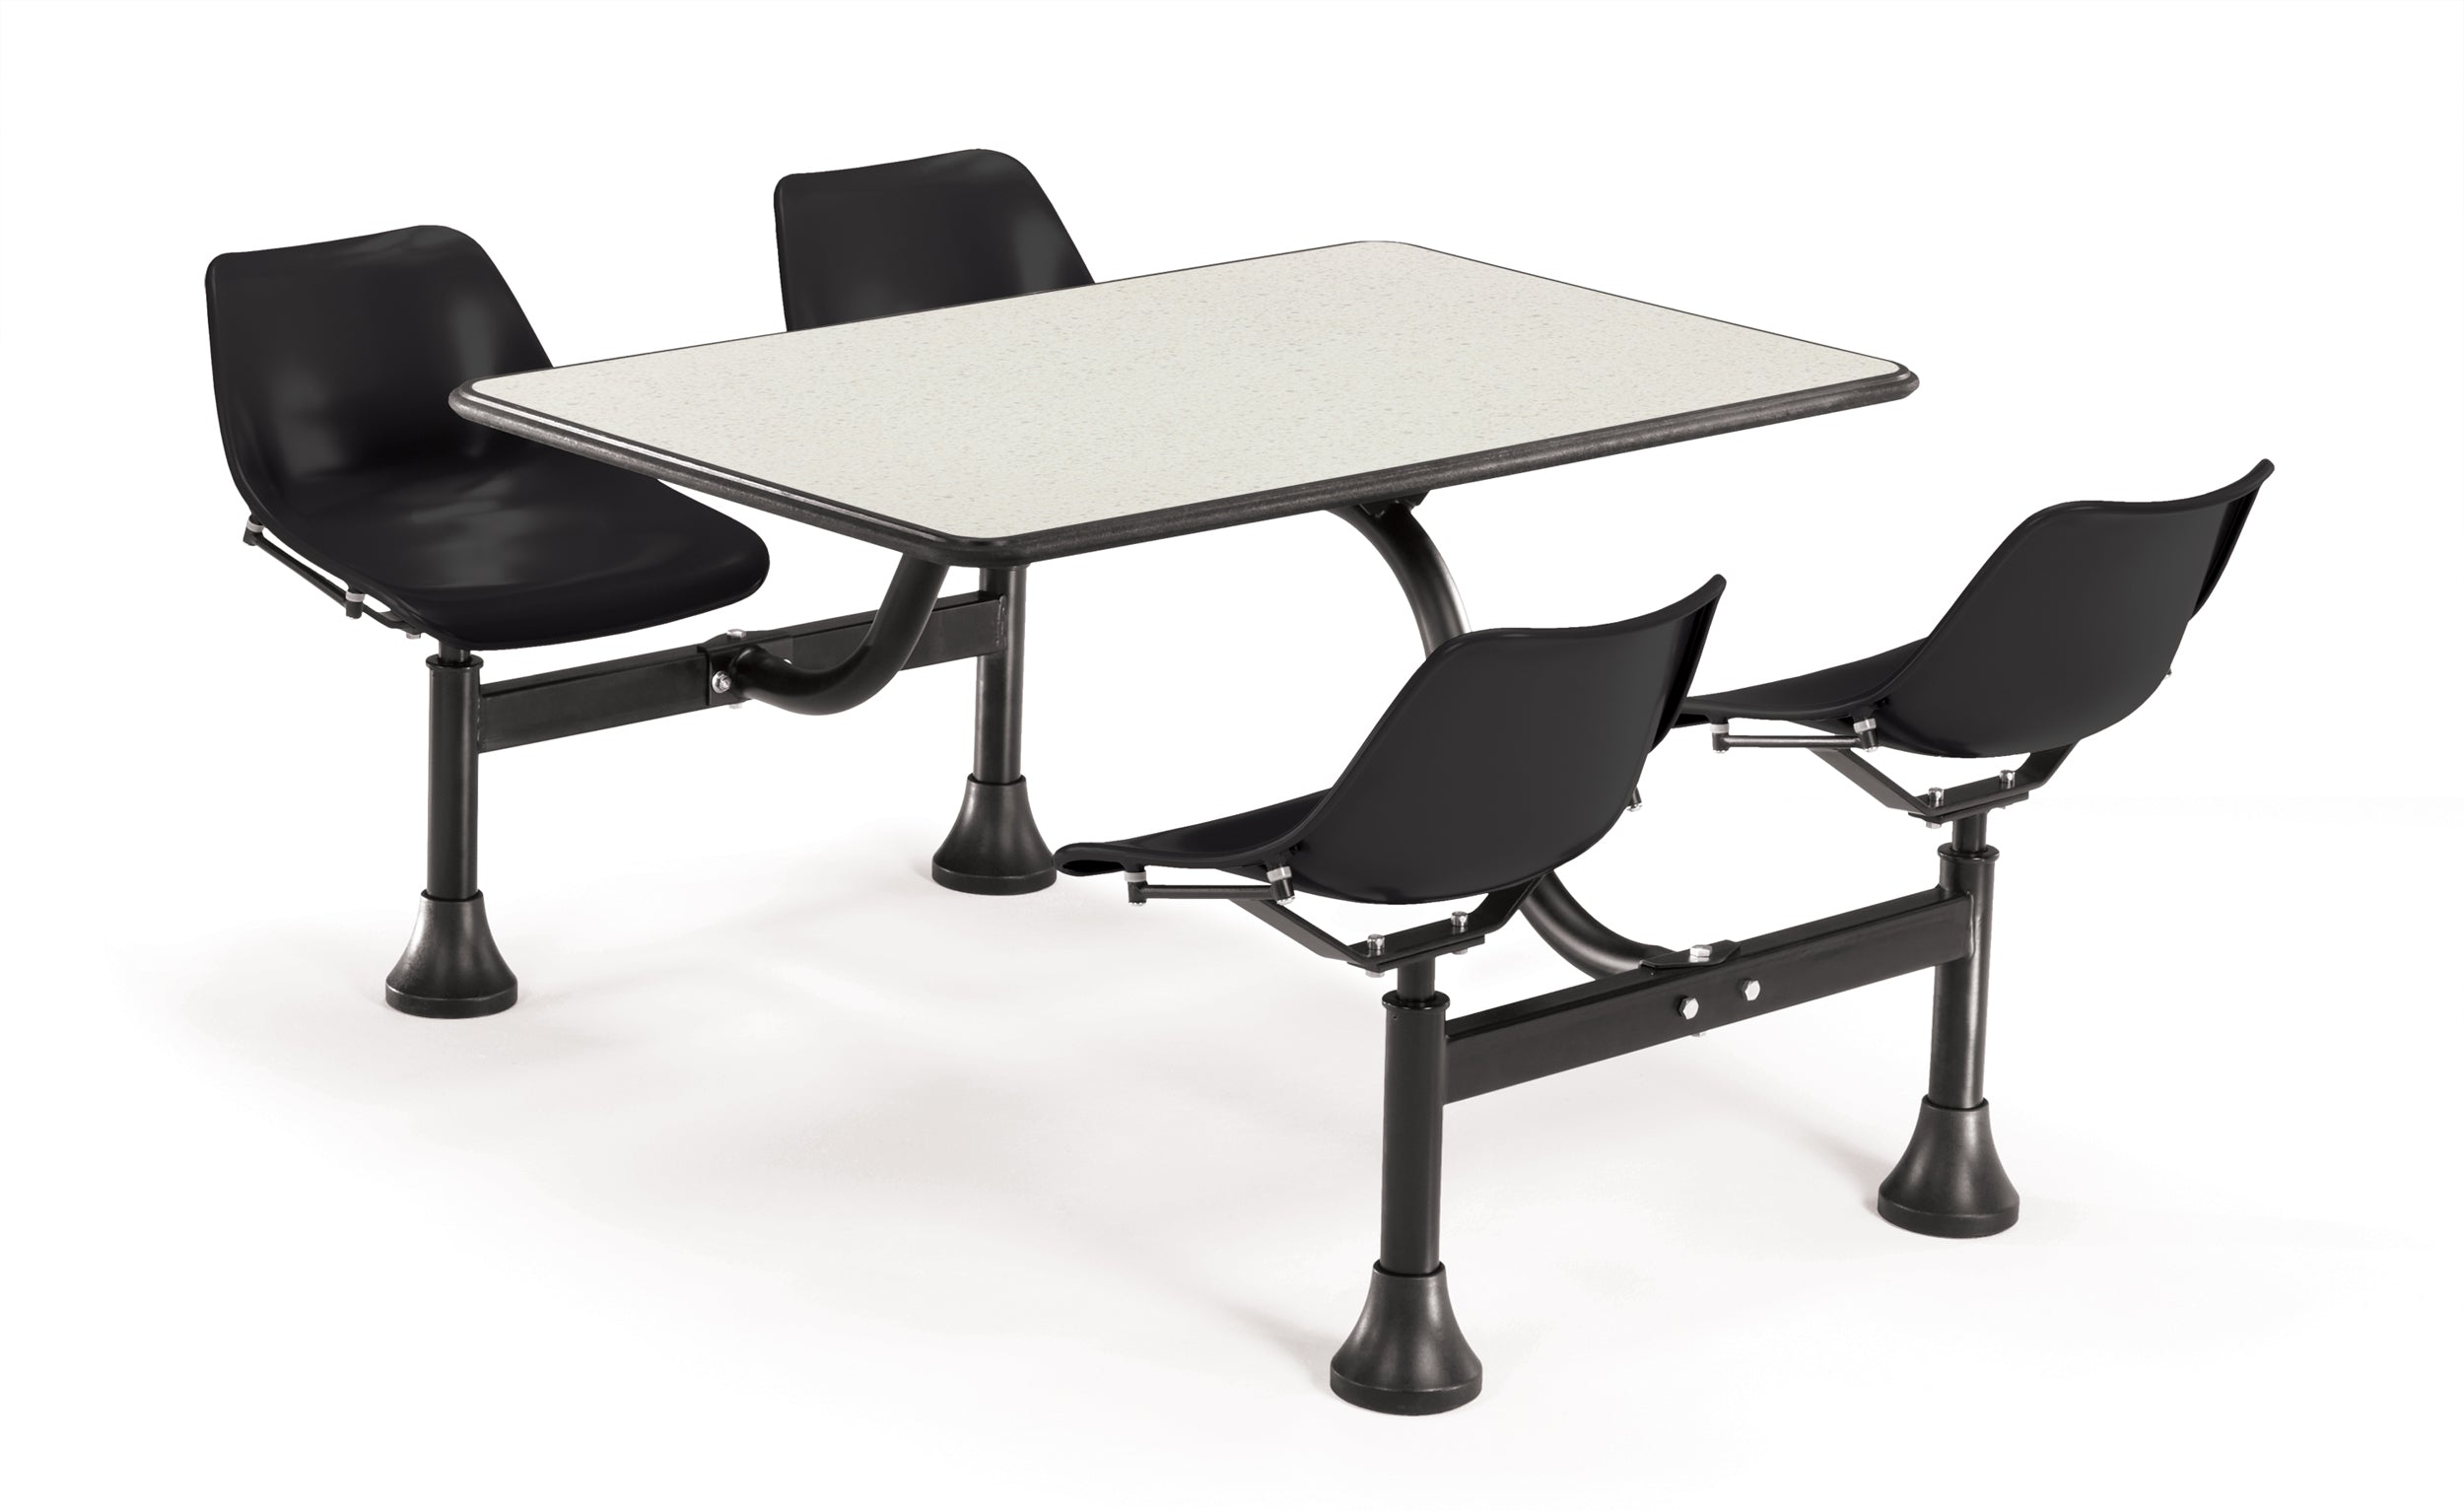 Model 1002 Cluster Table & Chairs Black Seat 24 Inch x 48 Inch Top